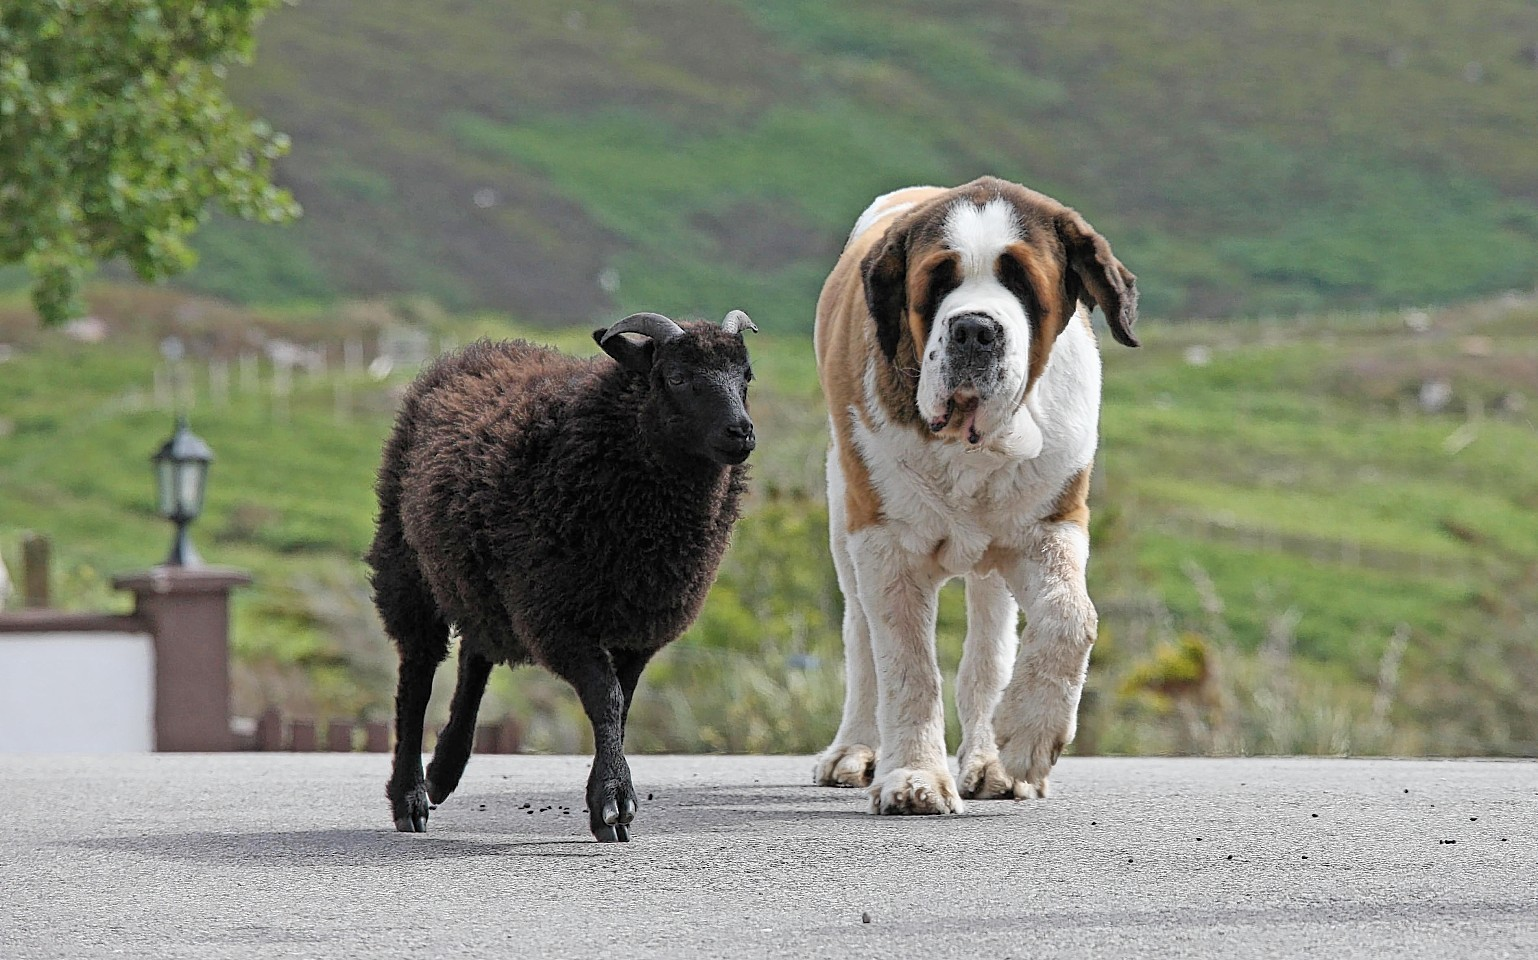 Dileas the St Bernard and Bruce the sheep who have struck up an unlikely friendship